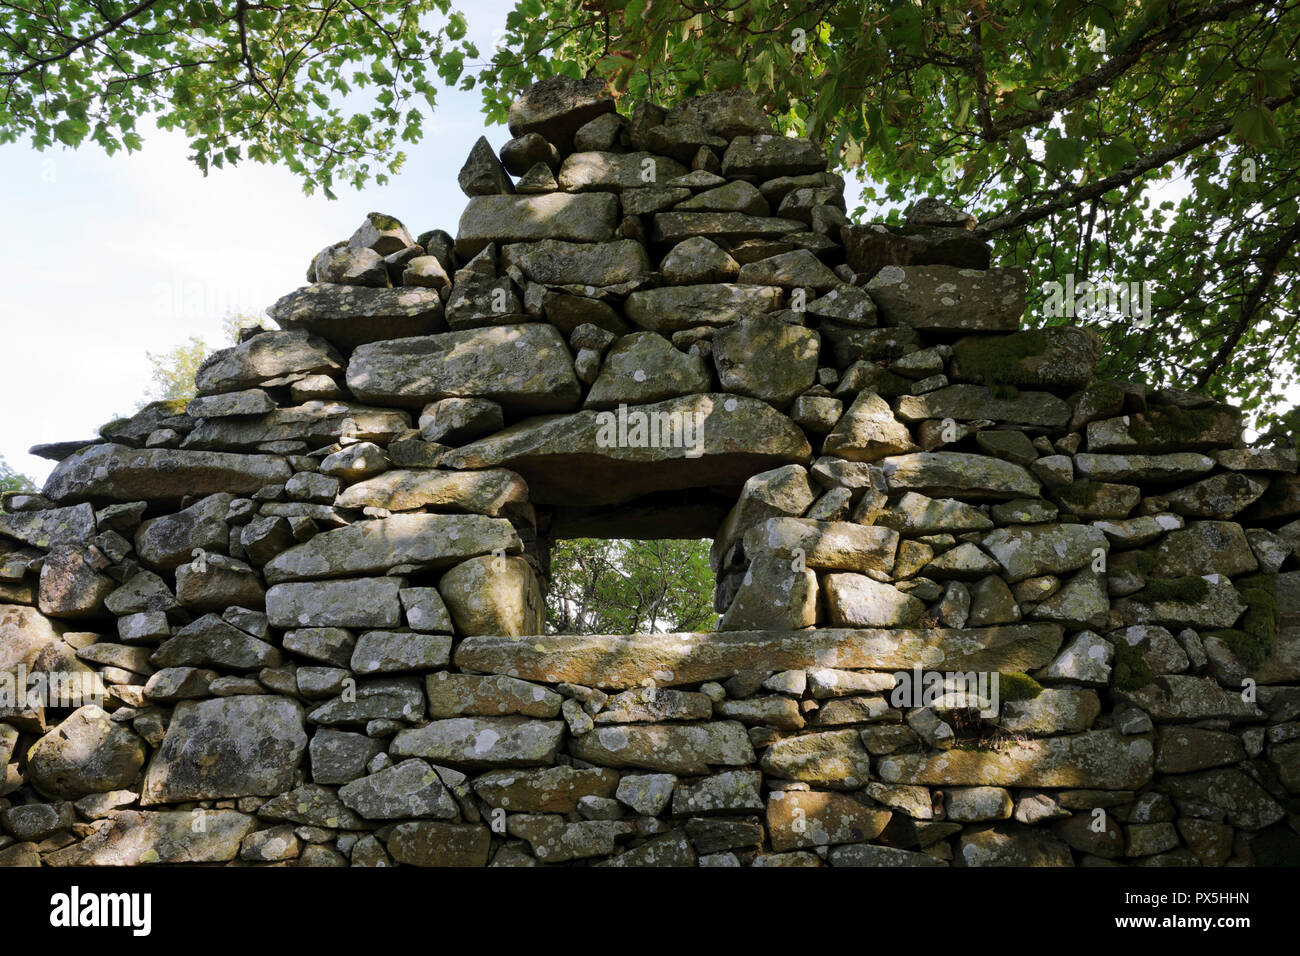 Looking from the inside to a window in a gable wall of a drystone built barn at the abandoned upland farmstead of Hafod y Garreg, Conwy Valley, Wales. - Stock Image